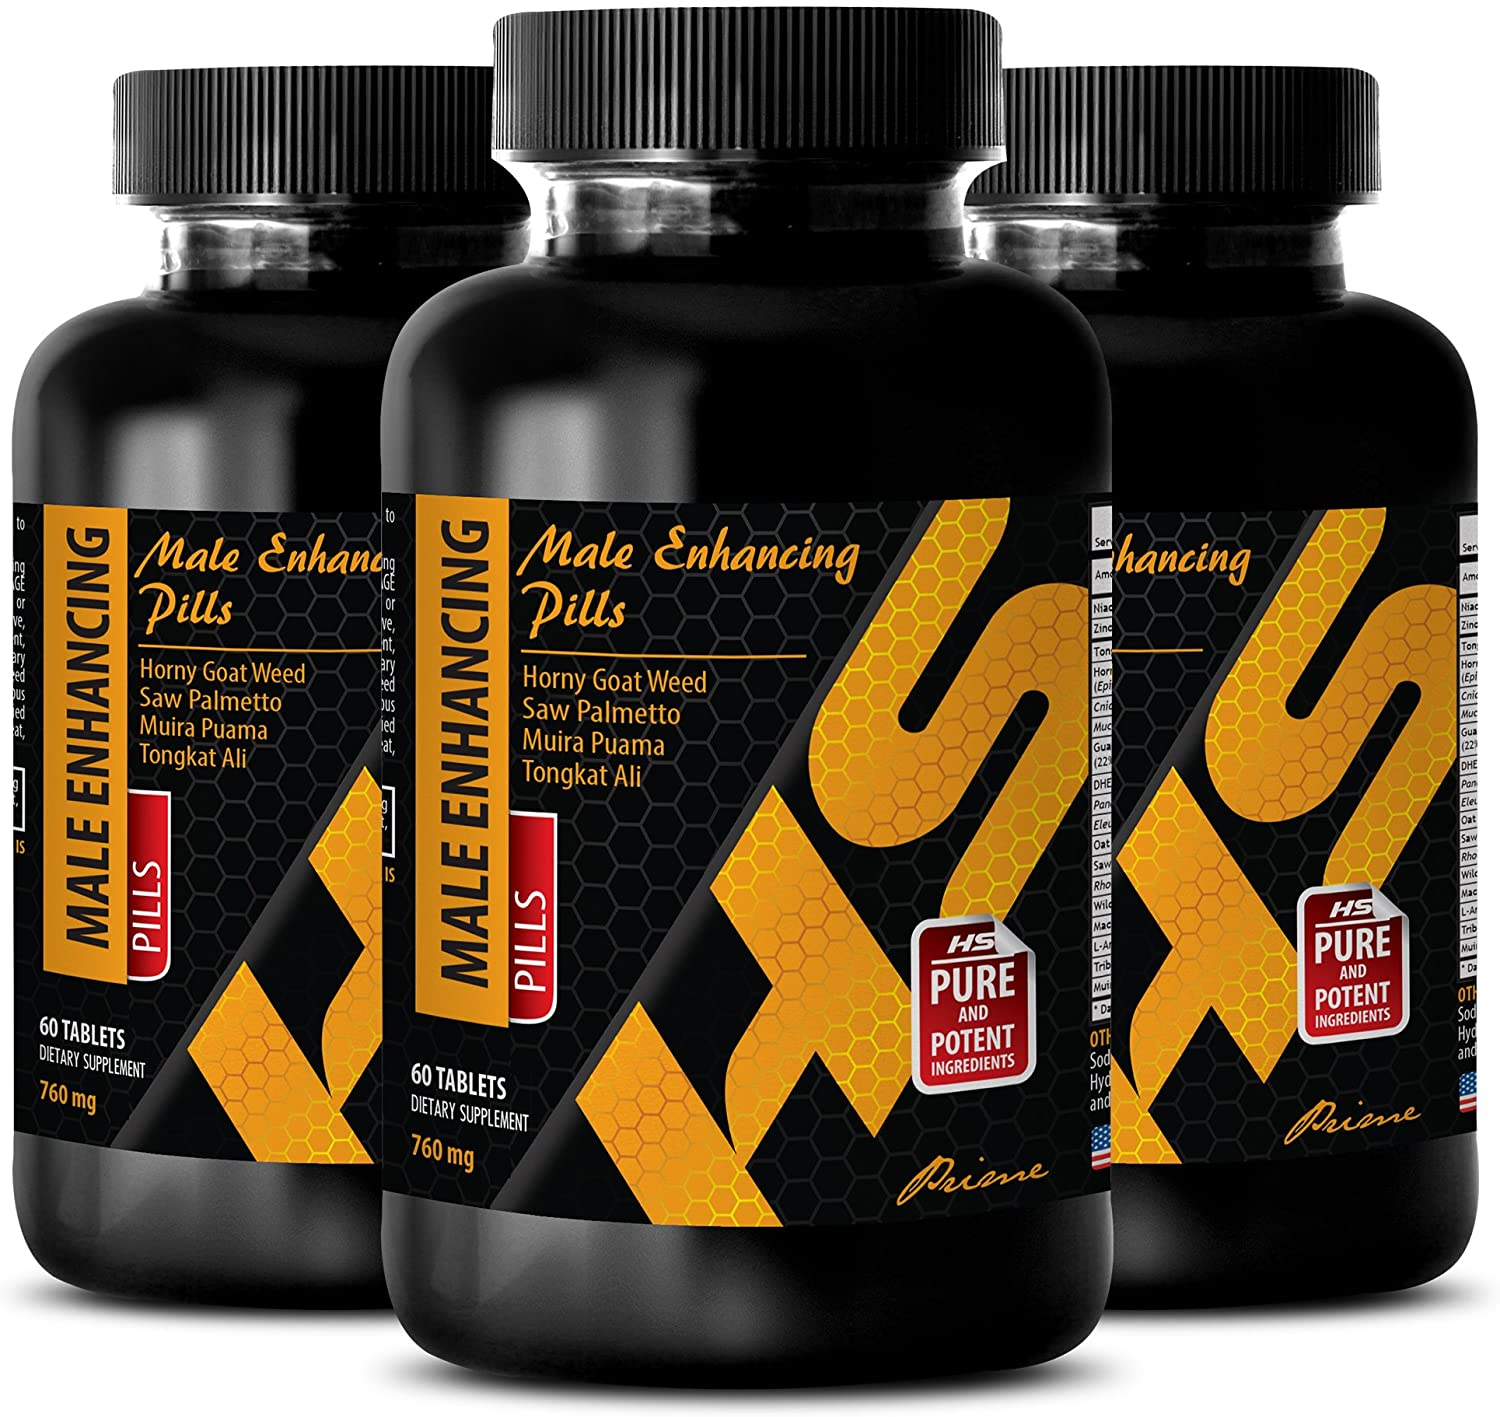 Muscle gain for Health Pills for Men - Male Enhancing Pills 760 MG - Horny Goat Weed Complex - 3 Bottles (180 Tablets)